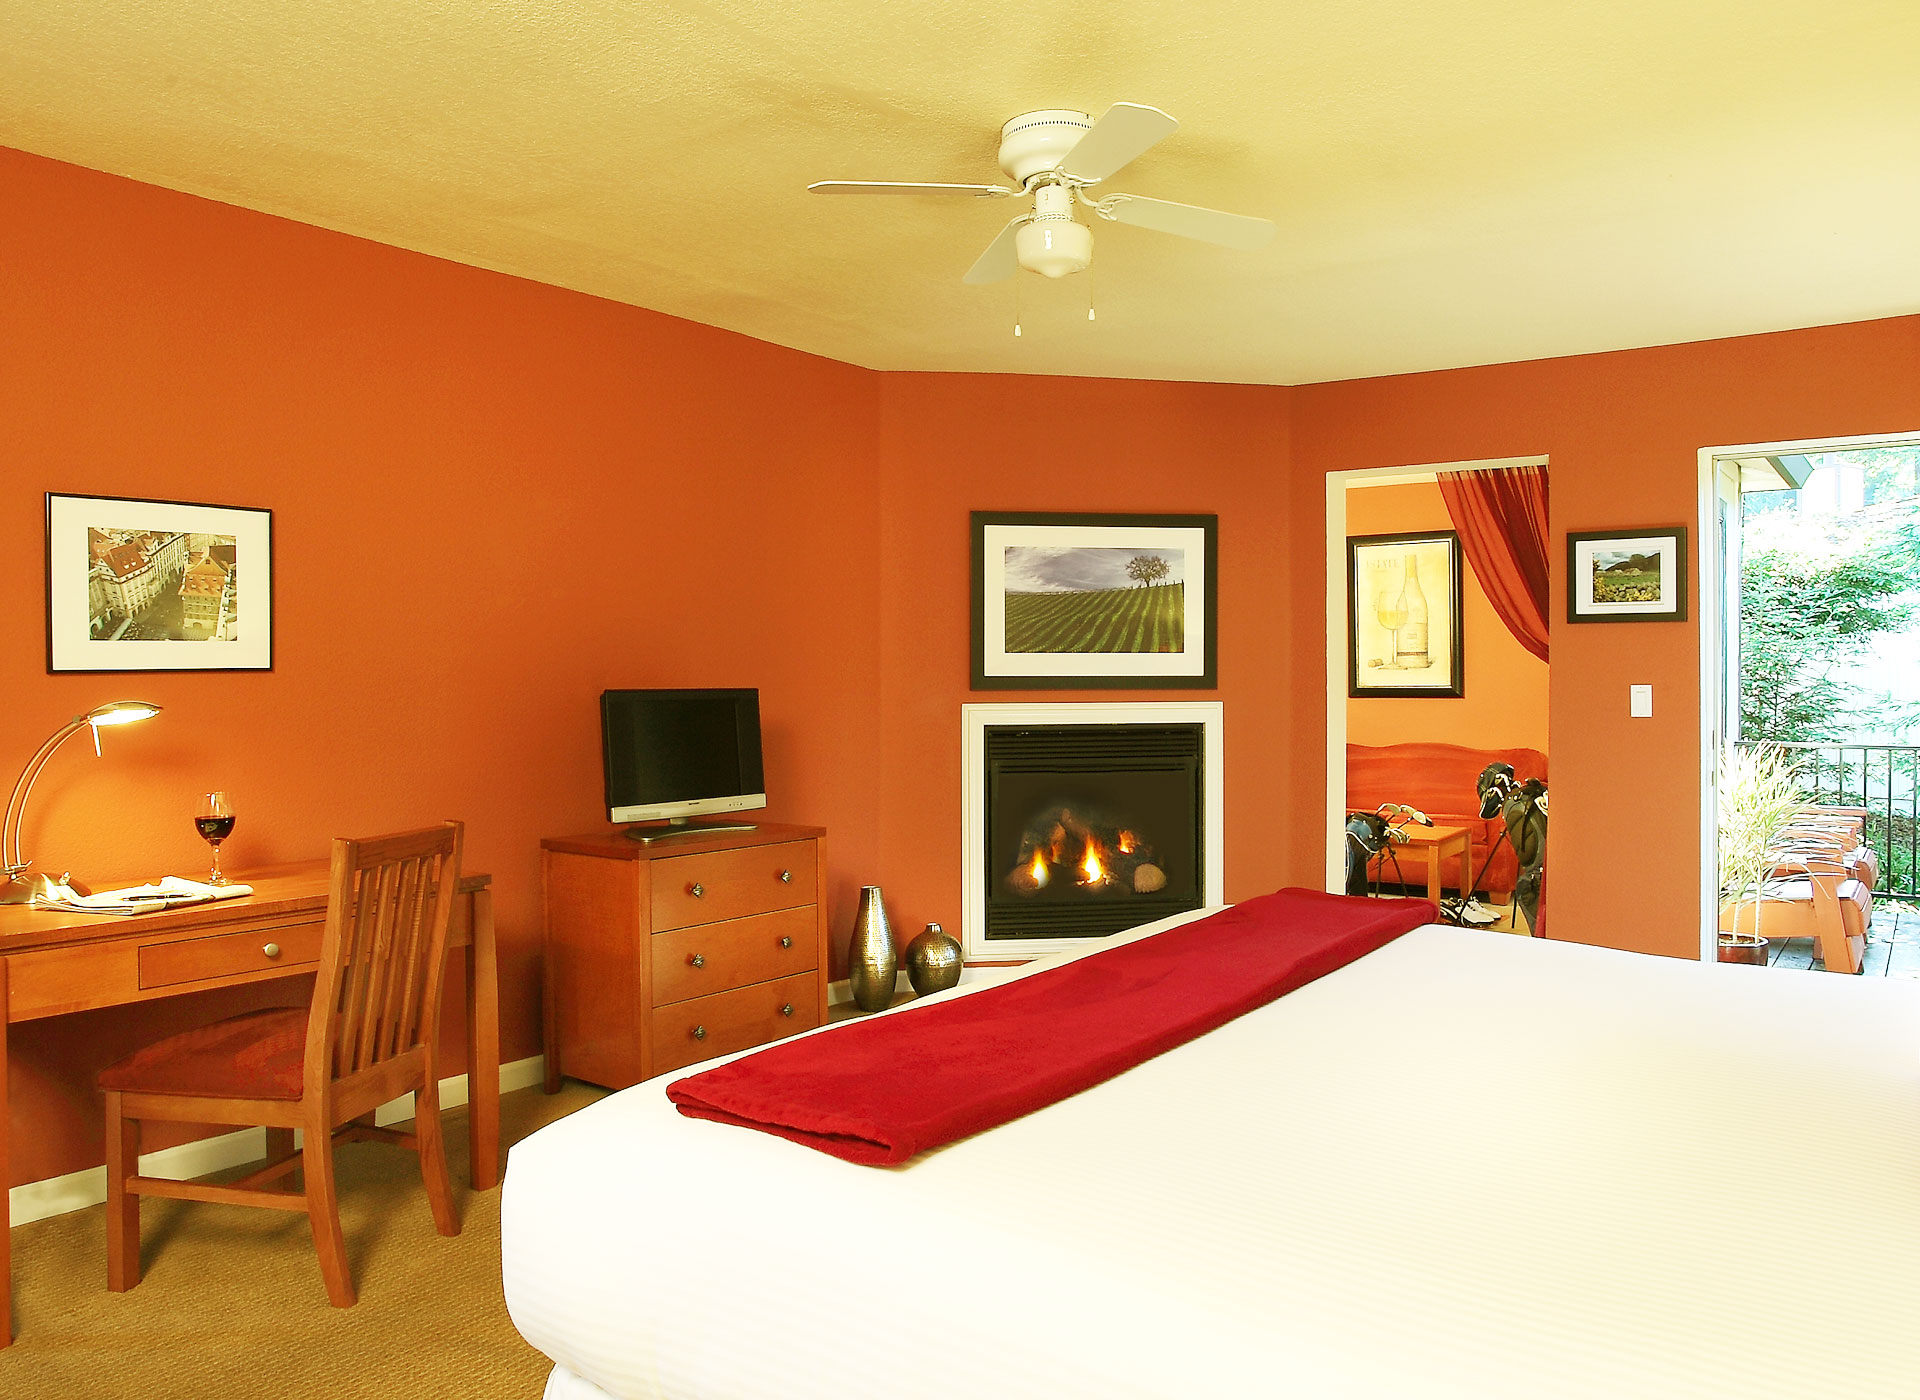 West Sonoma Inn and Spa Rooms & Suites